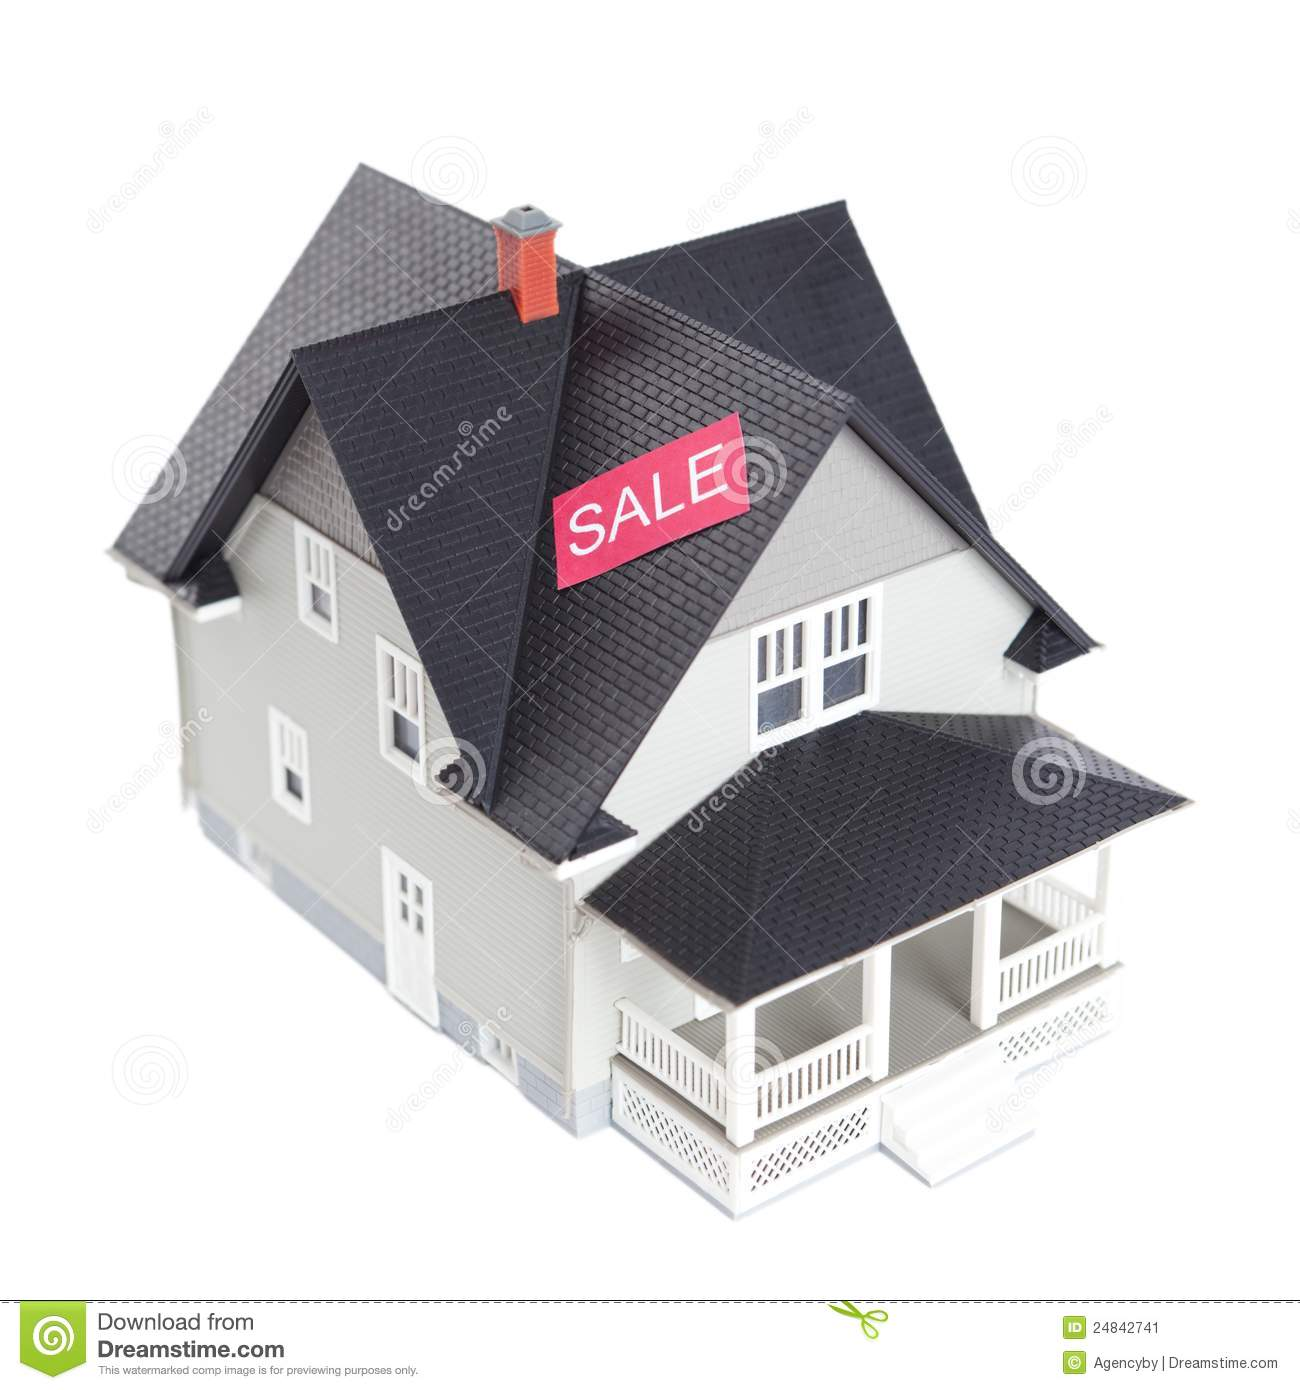 House architectural model with sale sign isolated stock for Architecture models for sale